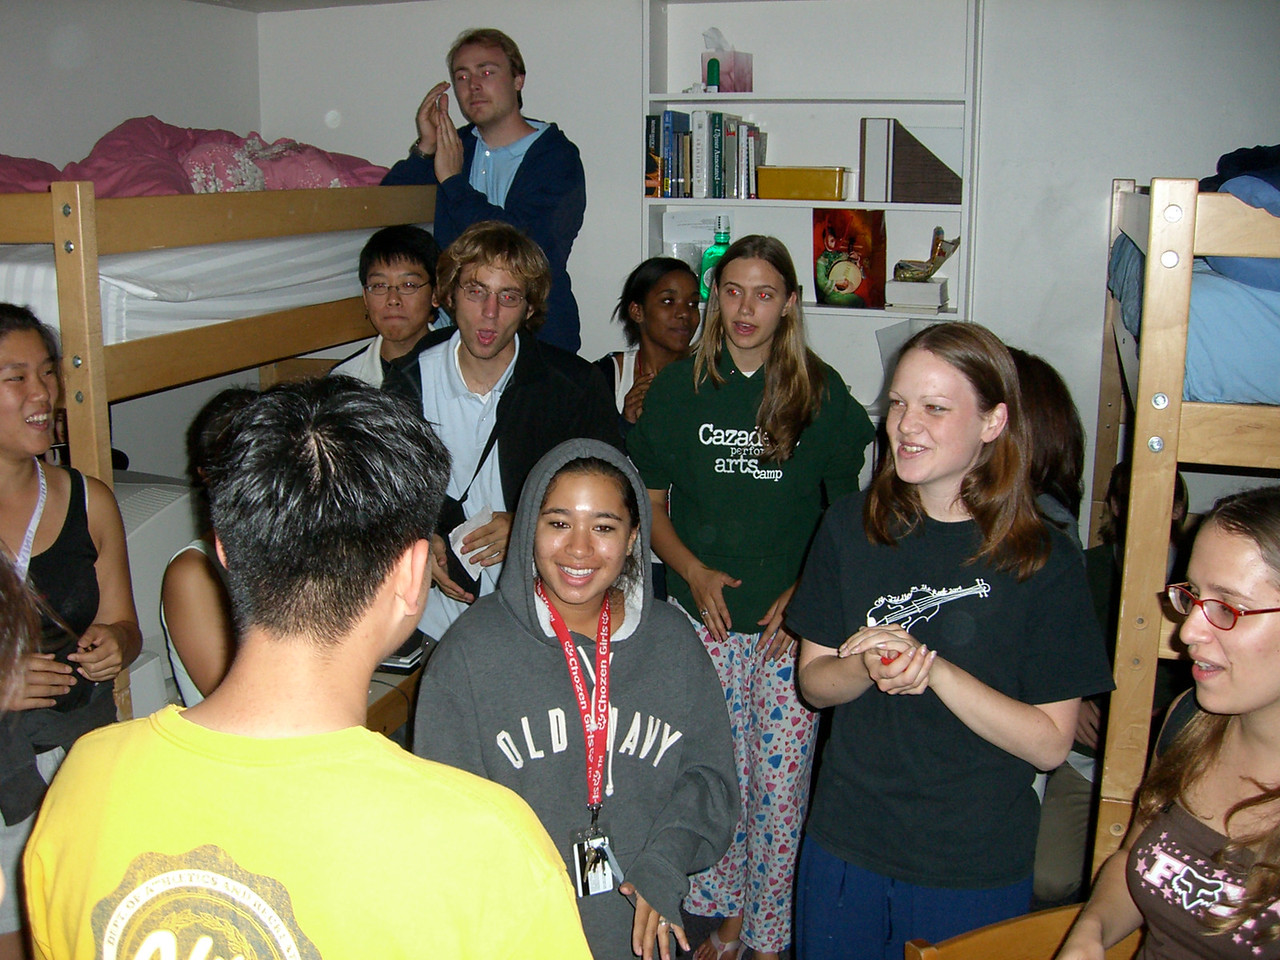 The 8th - More women in a dorm room than you'd want